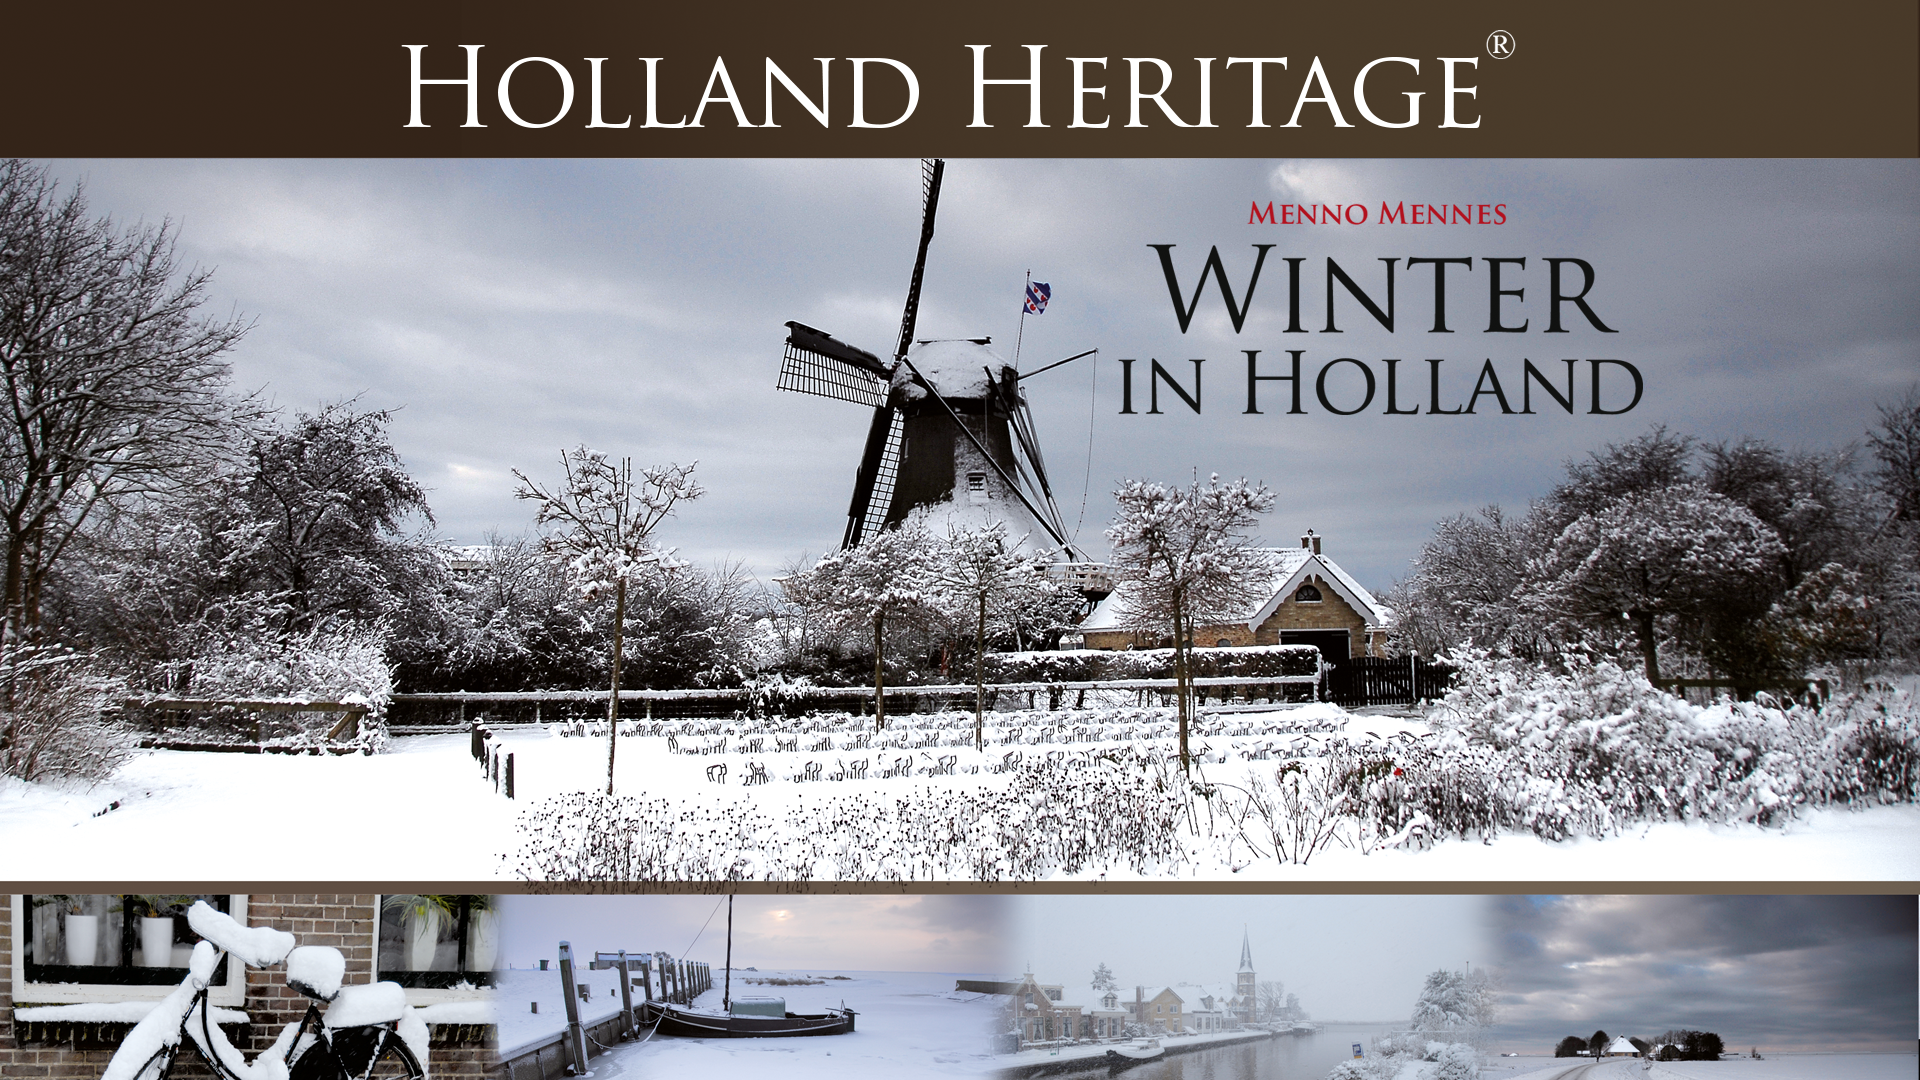 Holland Heritage - Winter in Holland